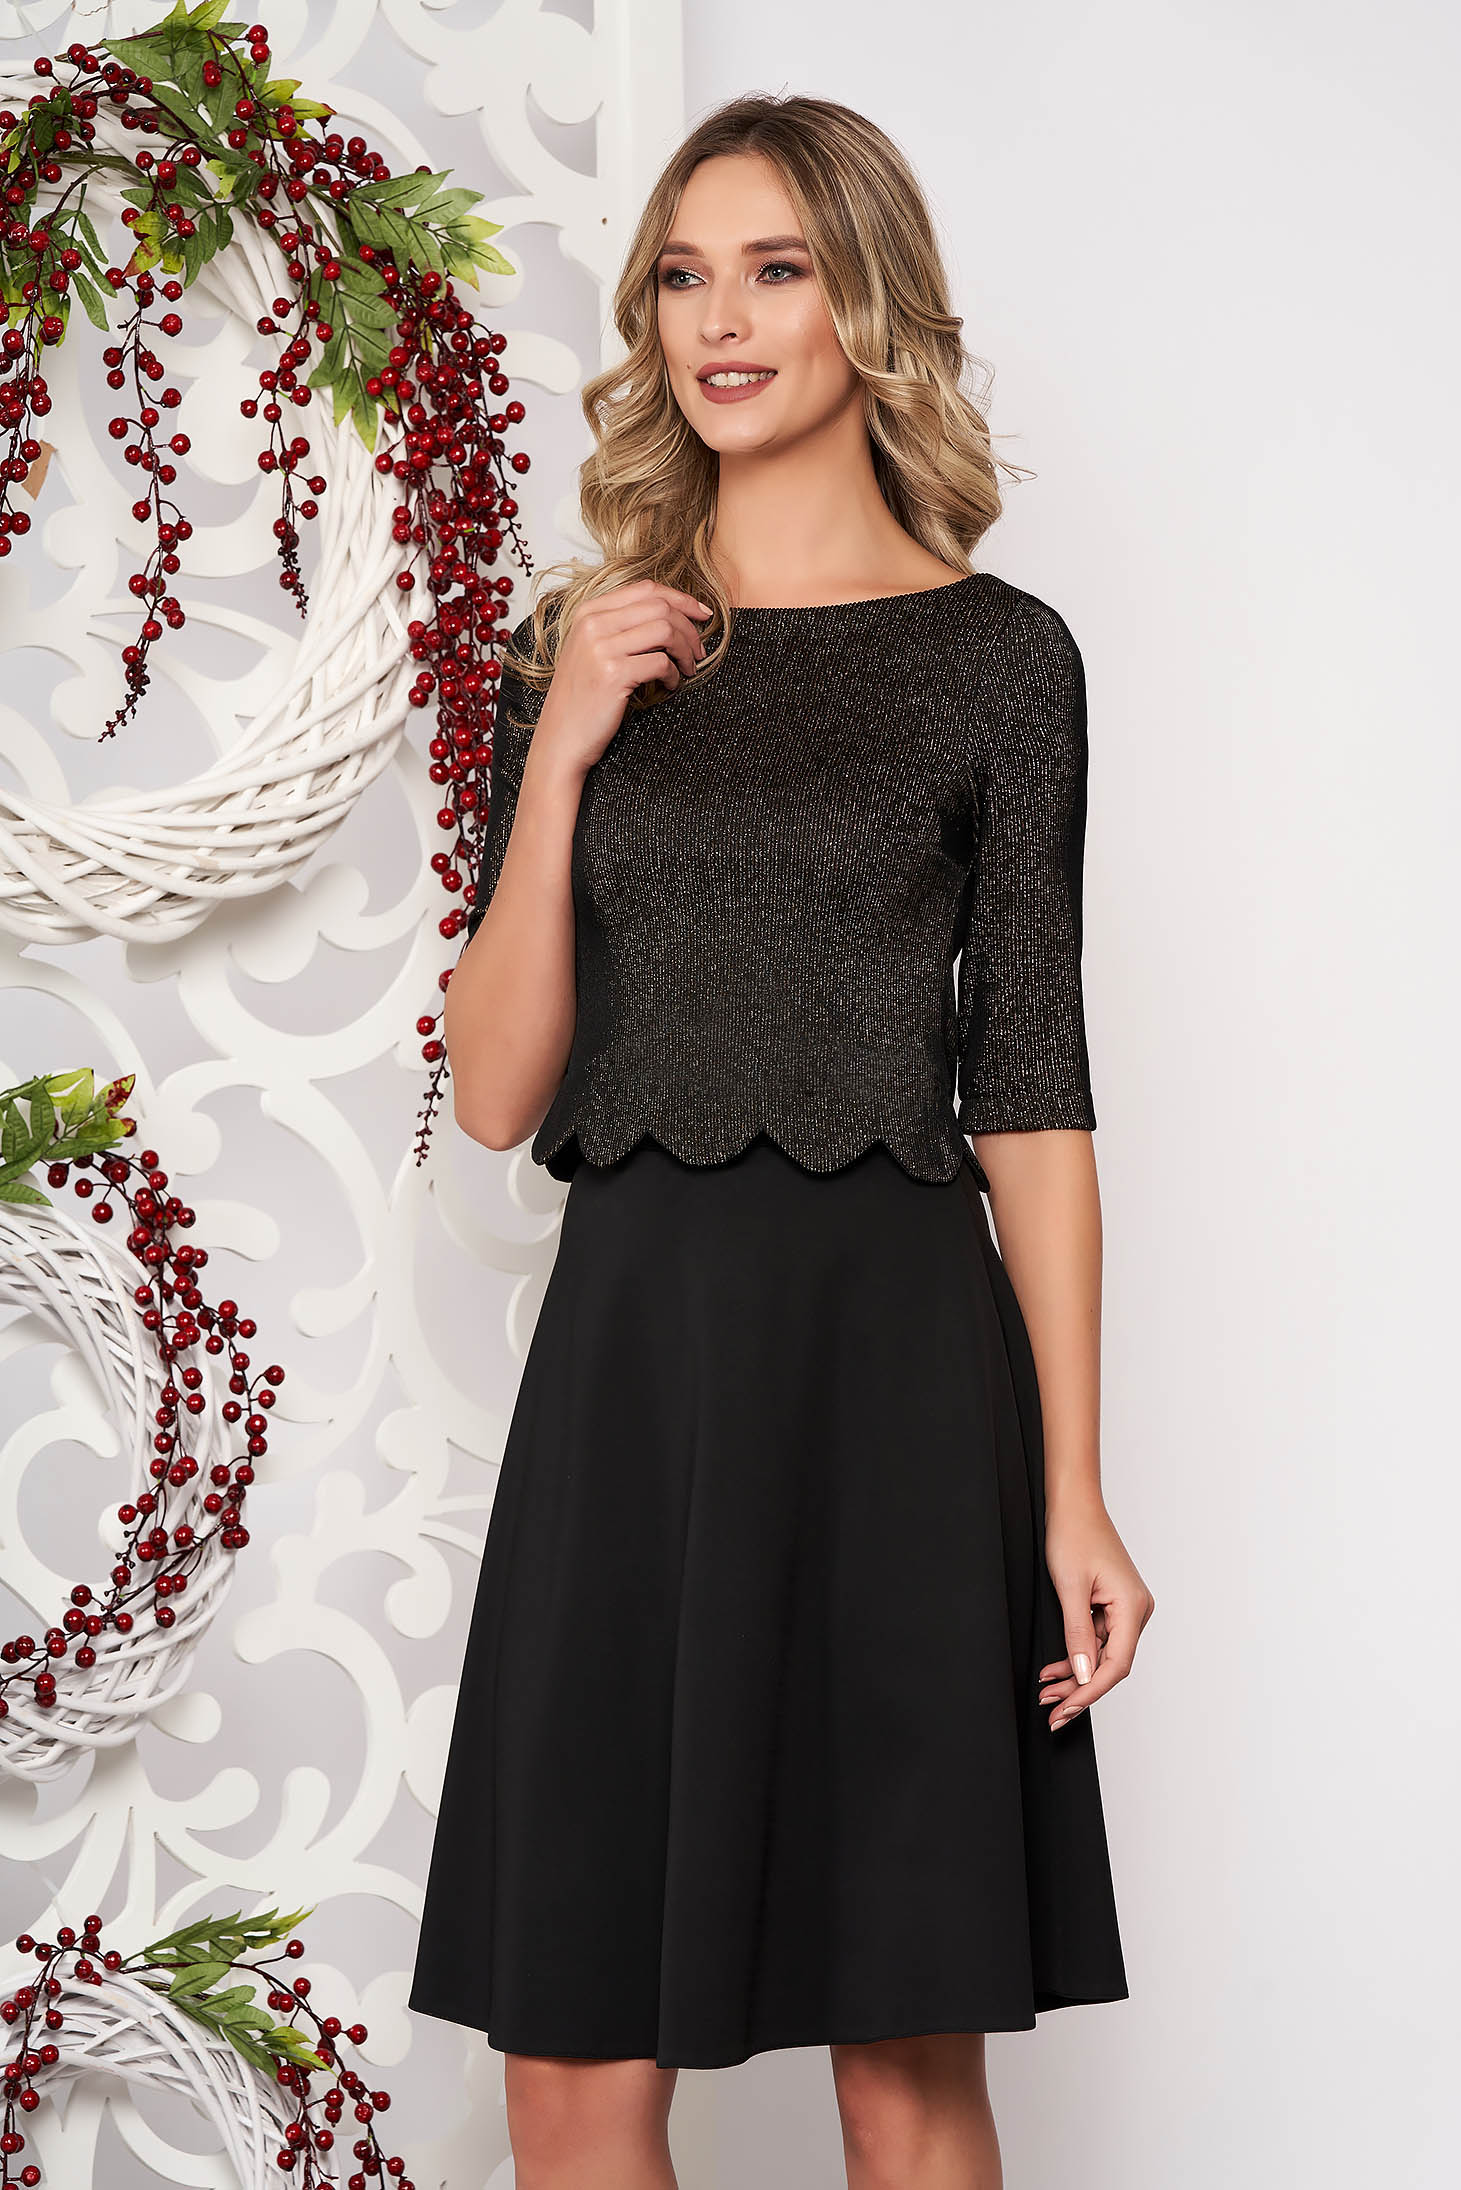 Set StarShinerS black occasional 2 pieces with skirt flaring cut with inside lining with 3/4 sleeves